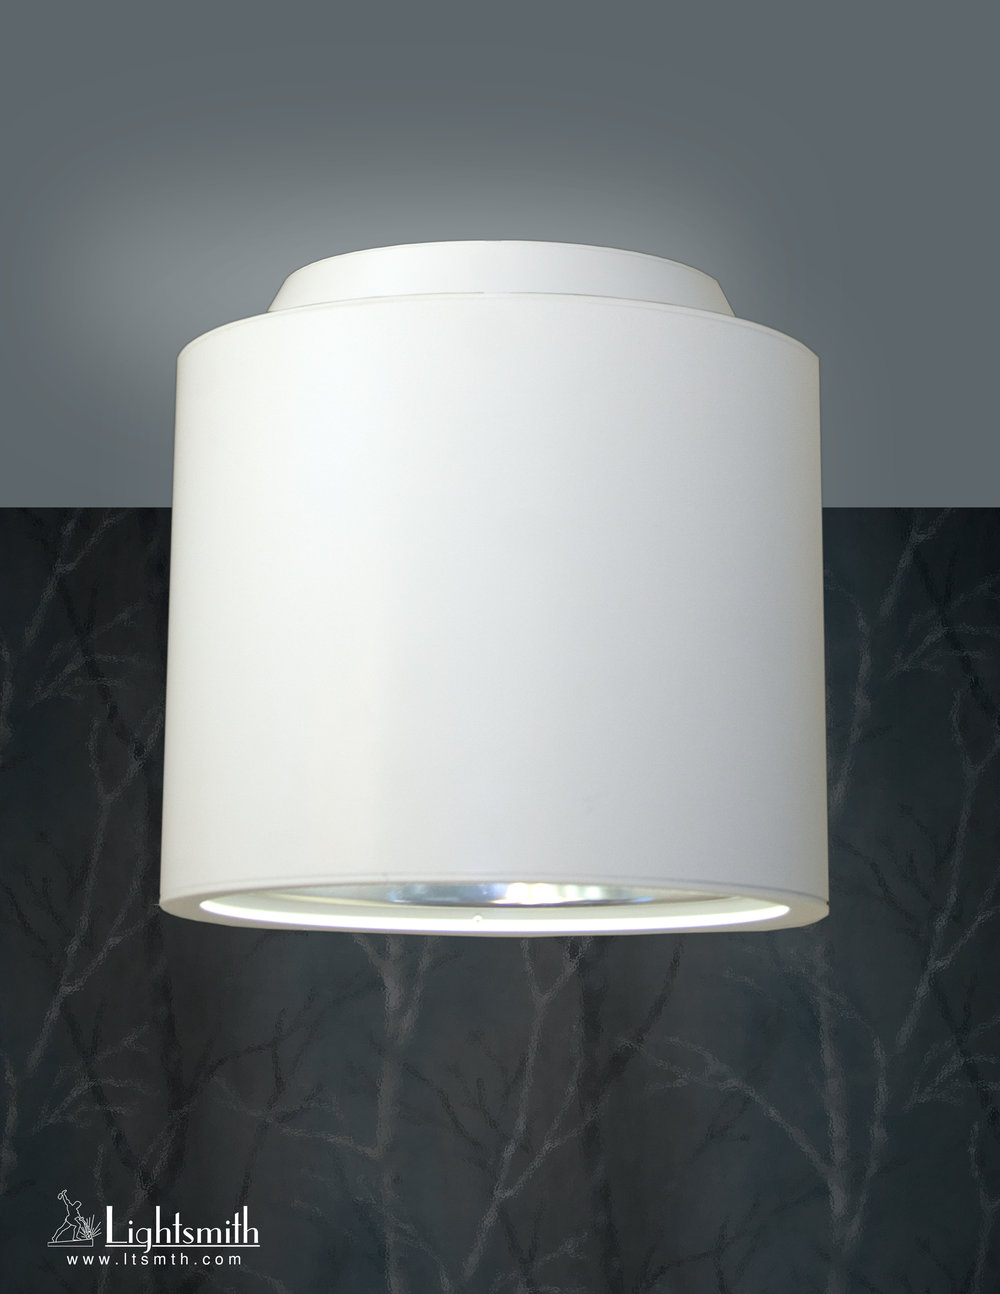 CL-10002 - Satin White - Clear Reflector